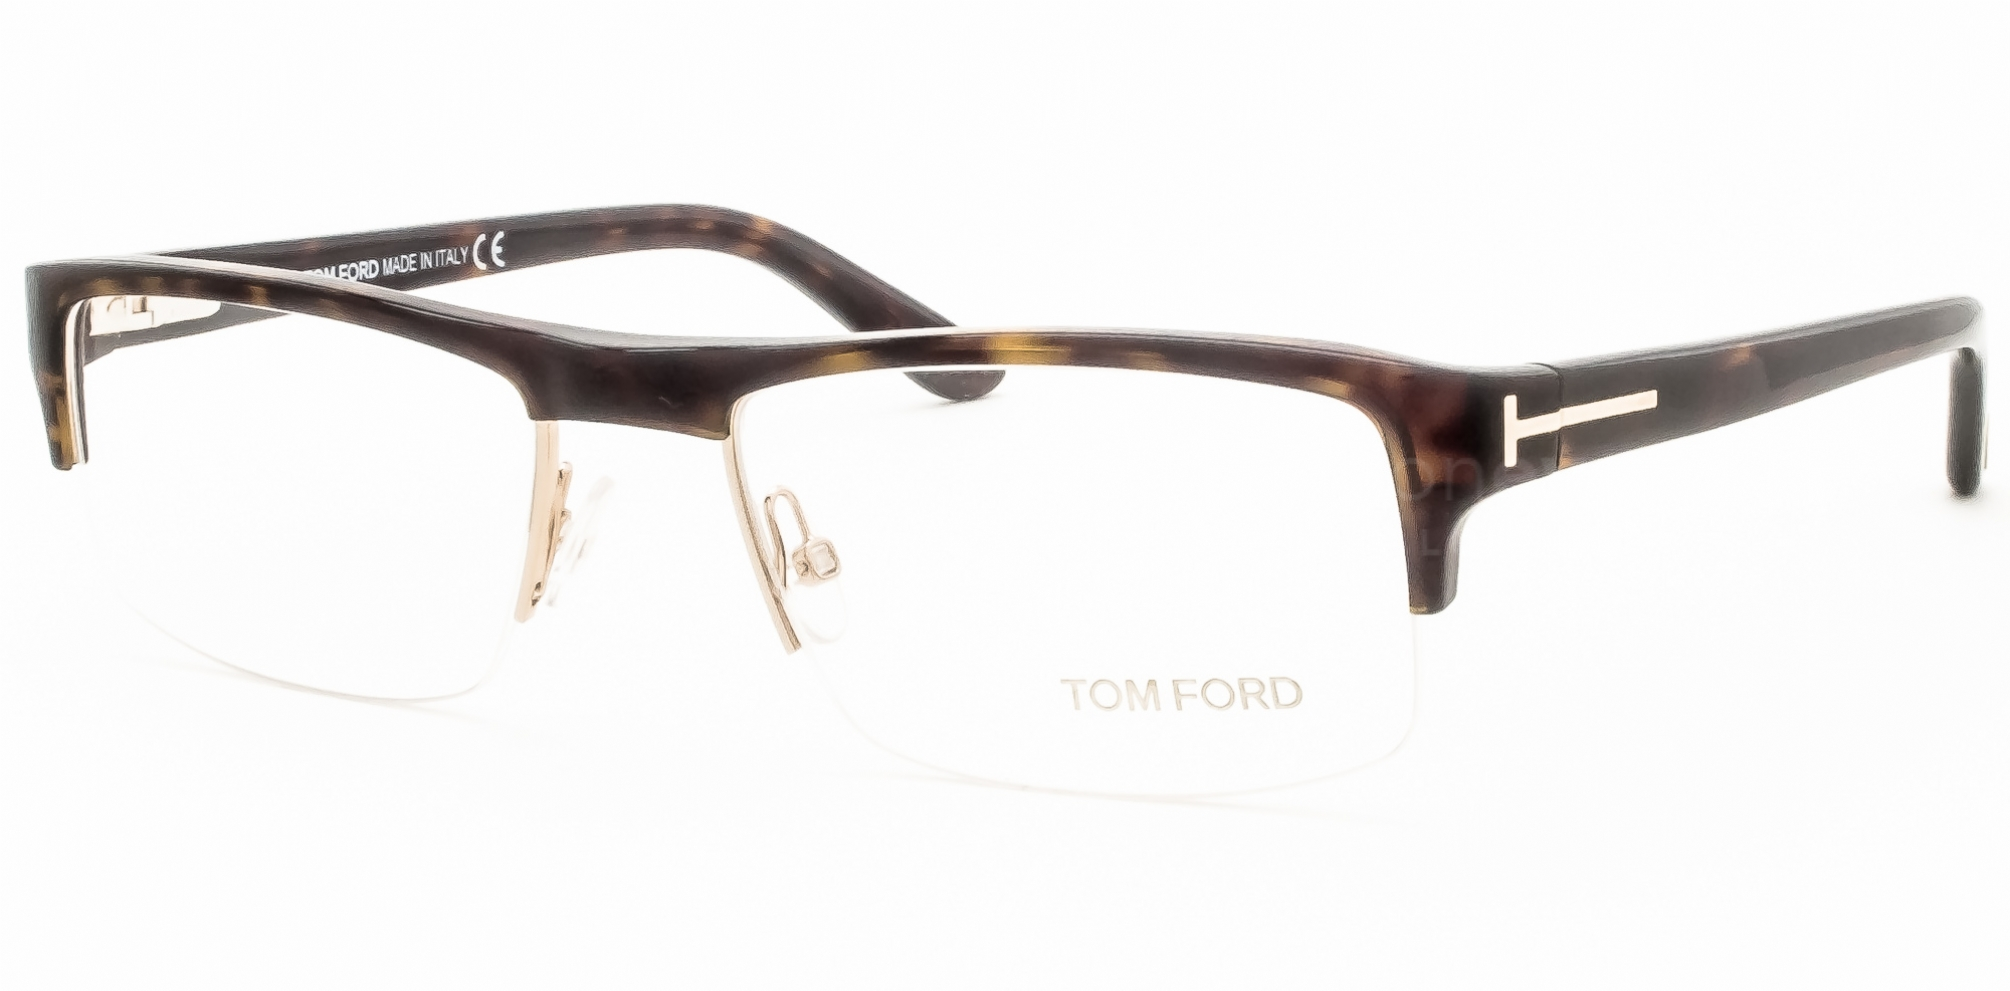 7db62d5992be9 Tom Ford 5241 Related Keywords   Suggestions - Tom Ford 5241 Long ...